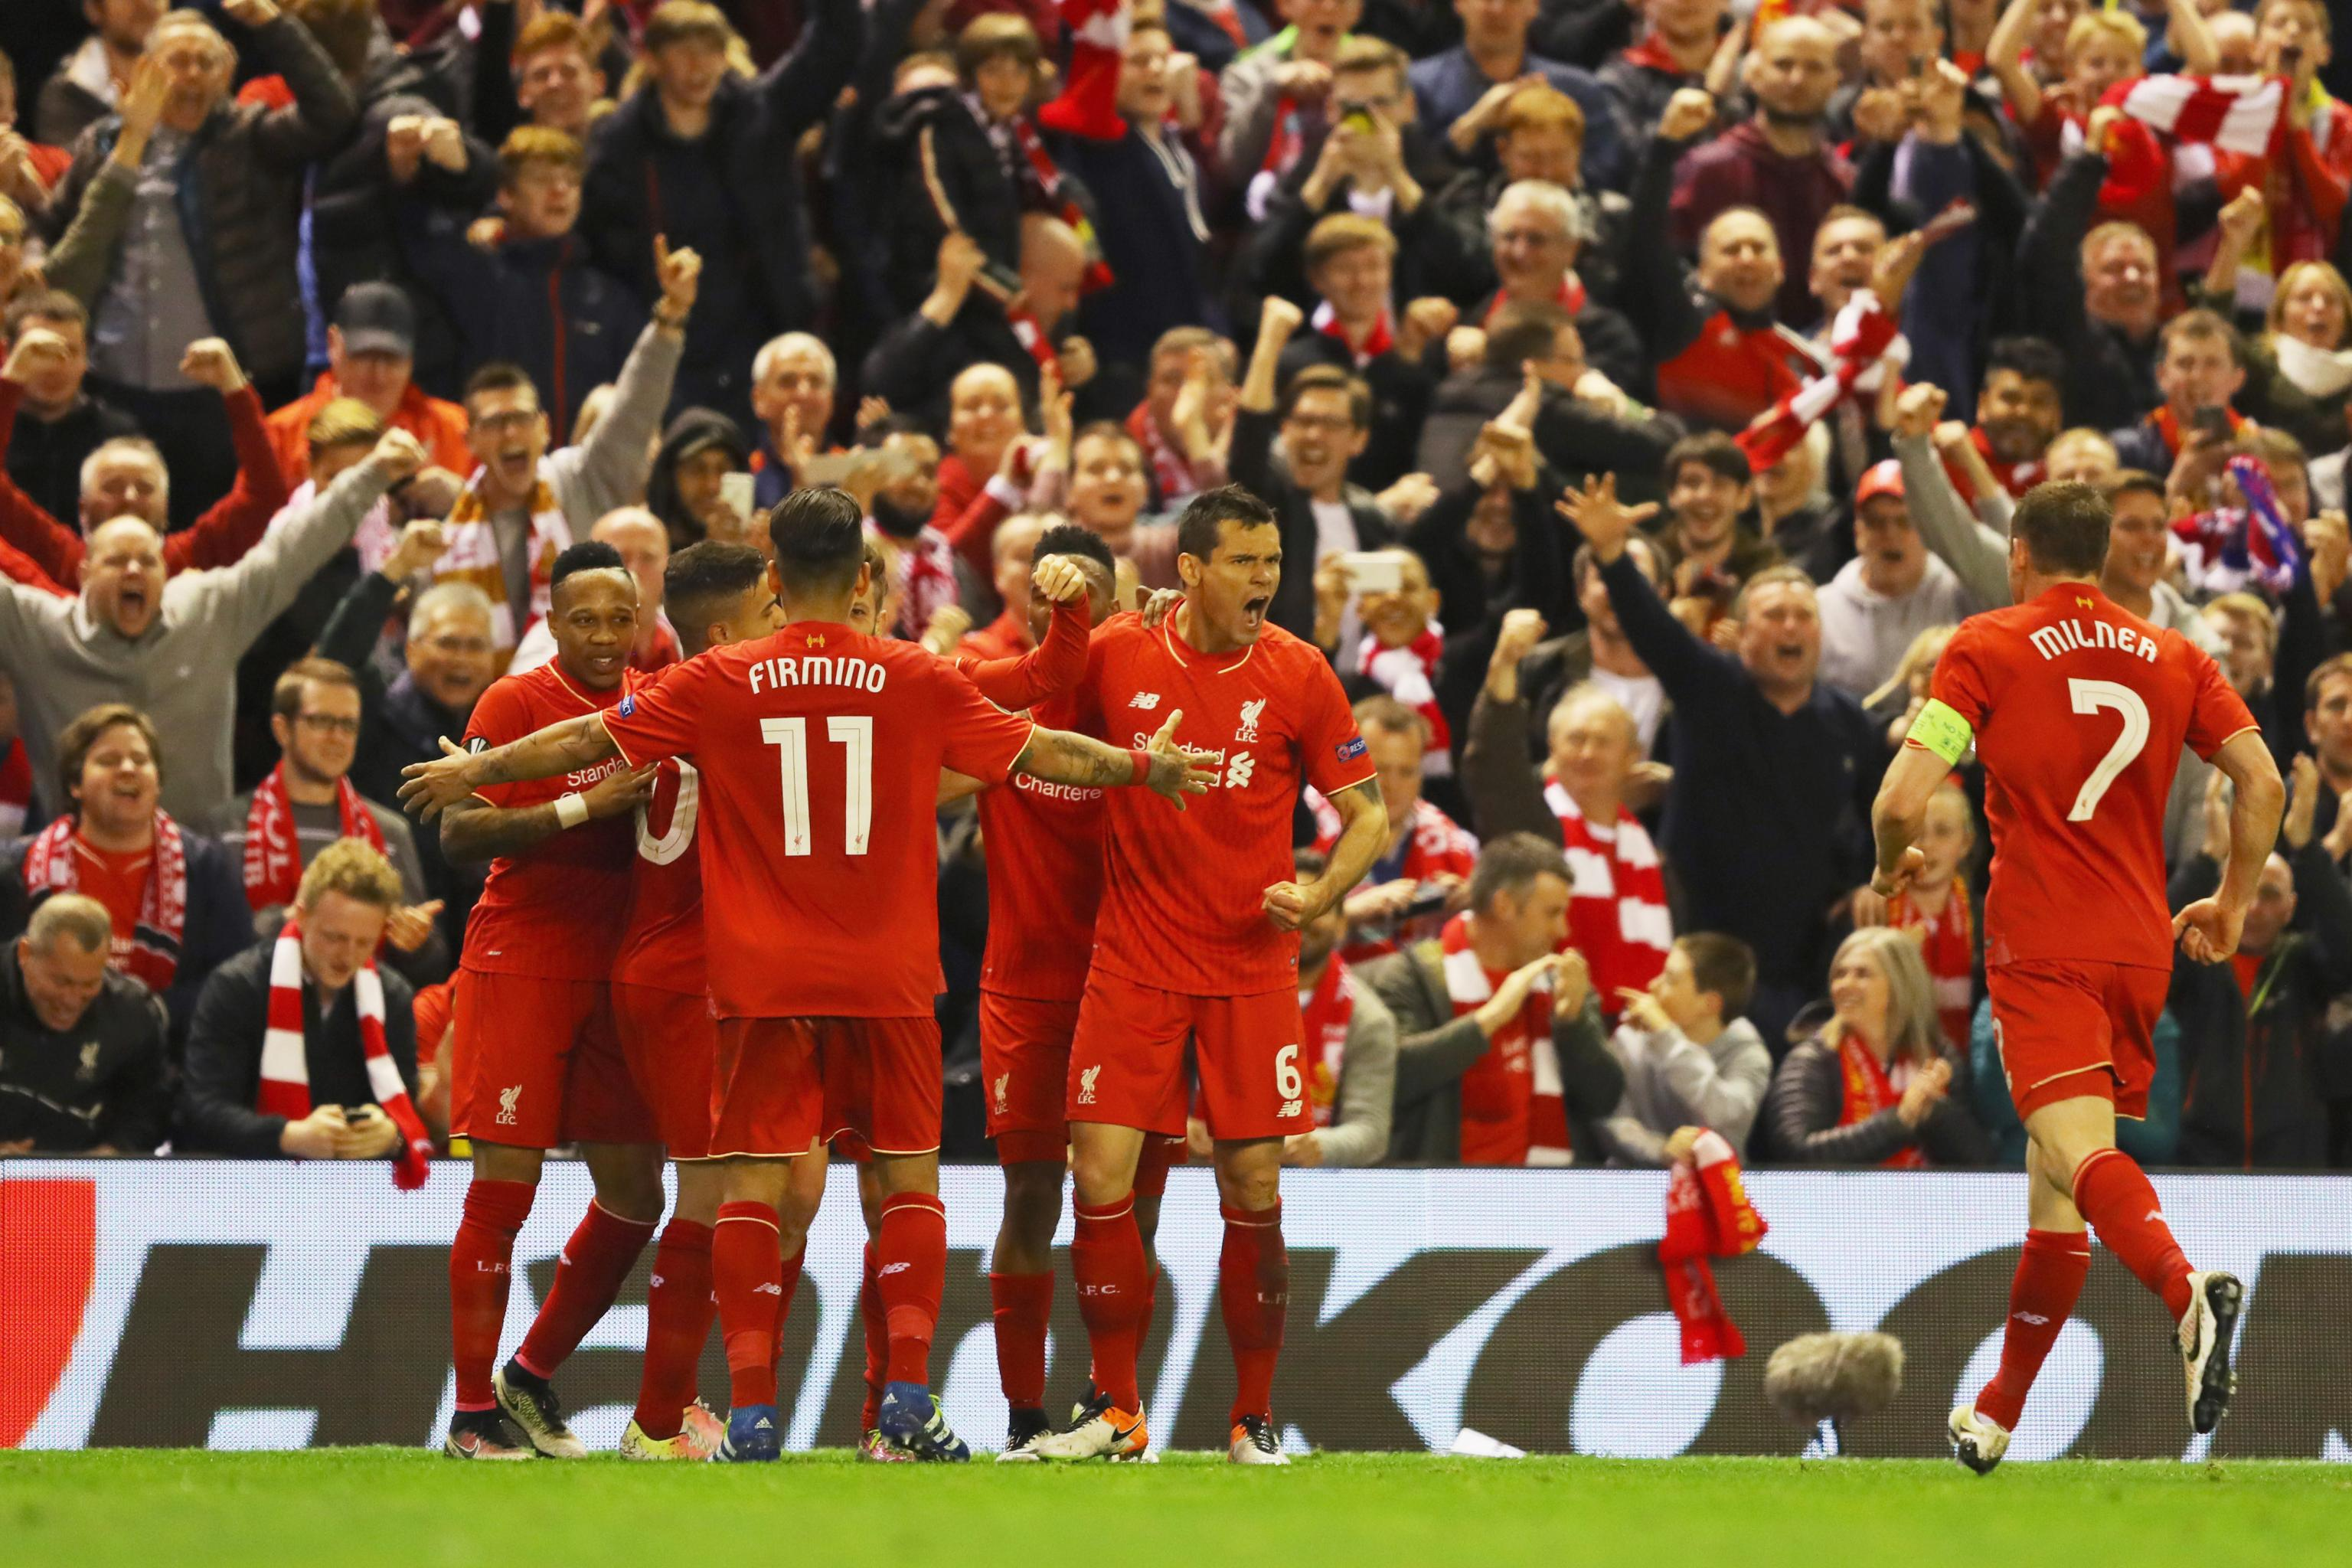 Liverpool Vs Leicester City Team News Predicted Lineups Score For Epl Match Bleacher Report Latest News Videos And Highlights